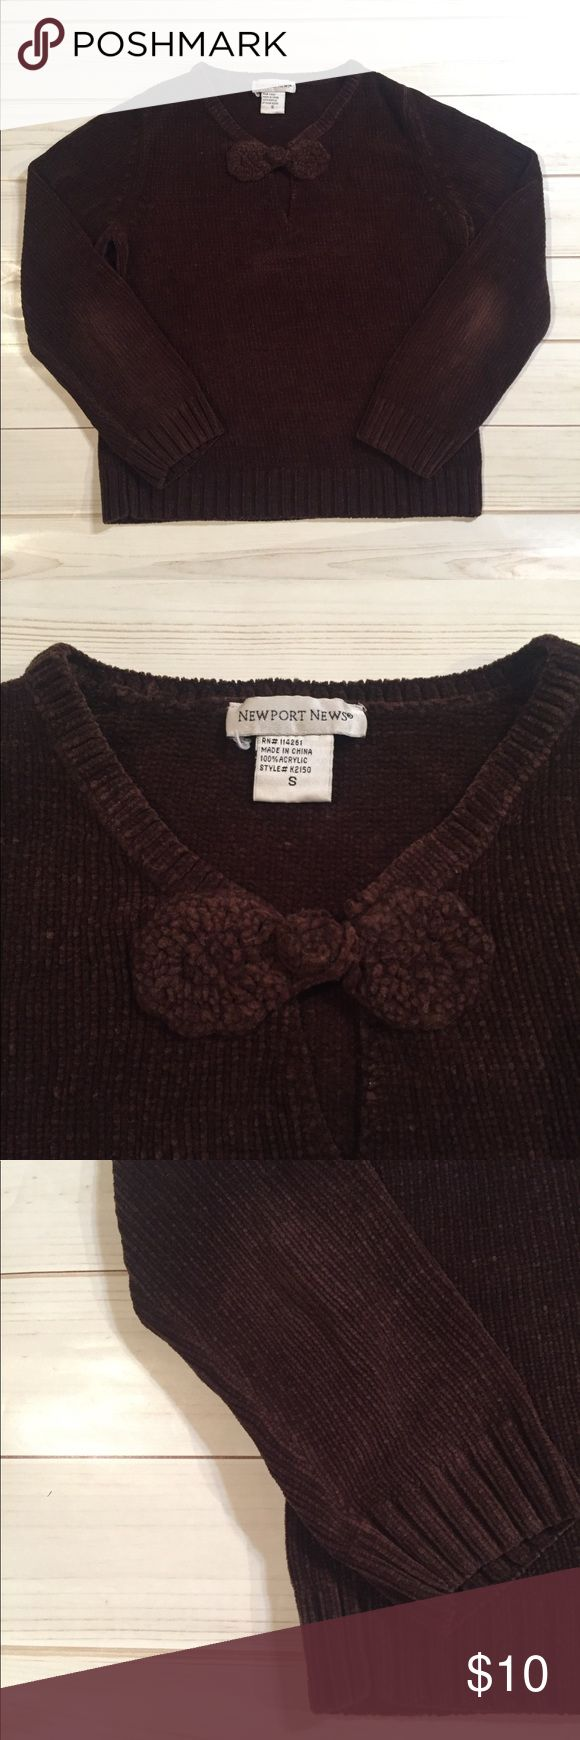 Dark Brown Bow Sweater A warm, cozy, and thick sweater in a dark brown collar. Features a cute bow across the neckline.  Worn a decent amount of times, as noted by the lighter elbow color. perfect for the inevitable winter. Newport News Sweaters